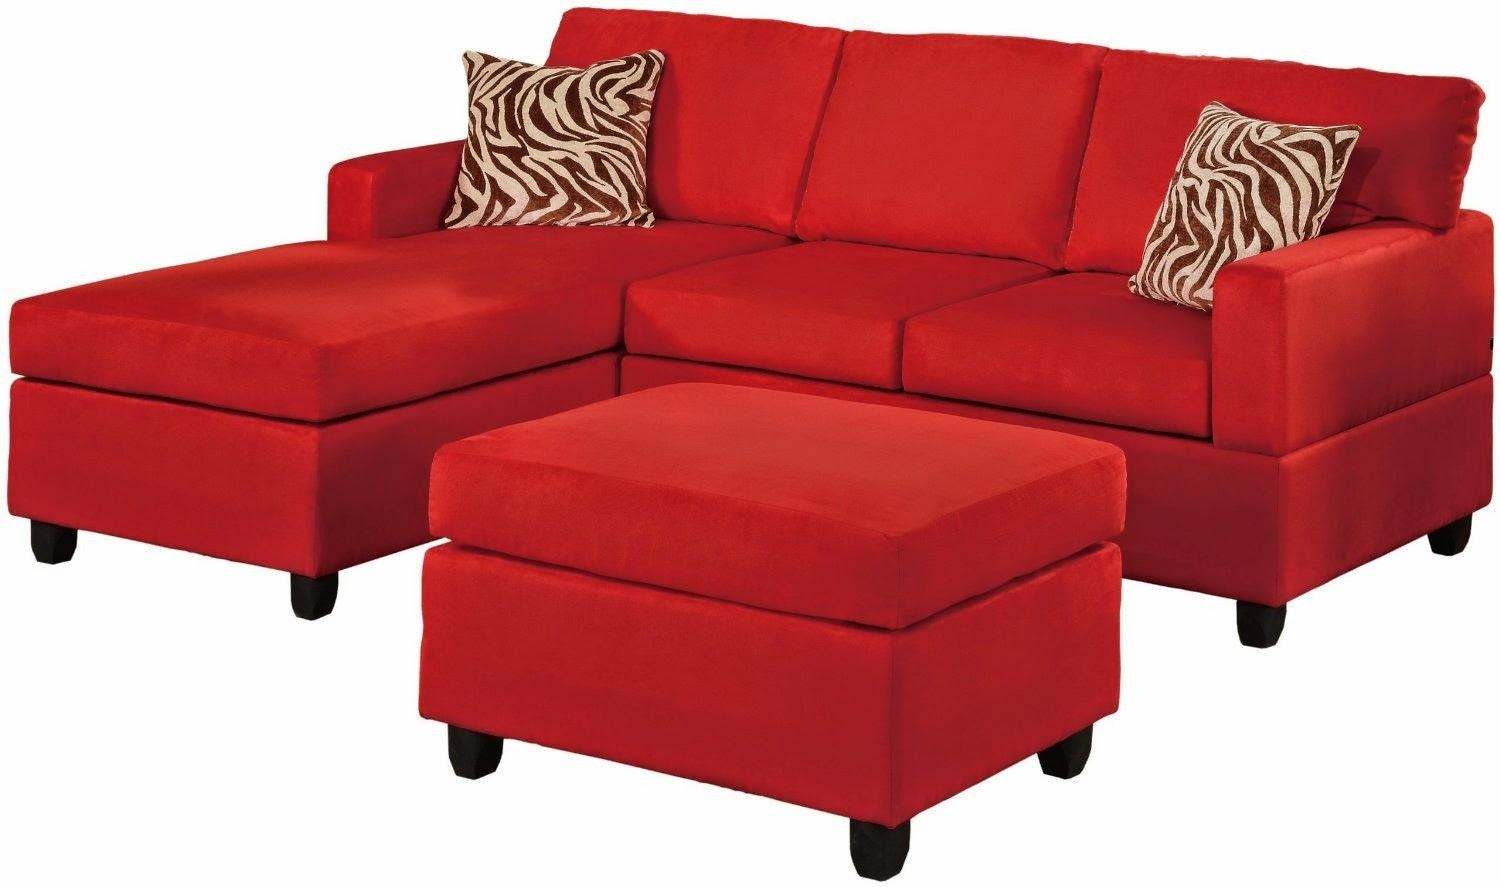 Red Sectional Sofas Cheap | Centerfieldbar In Red Sectional Sleeper Sofas (View 13 of 22)